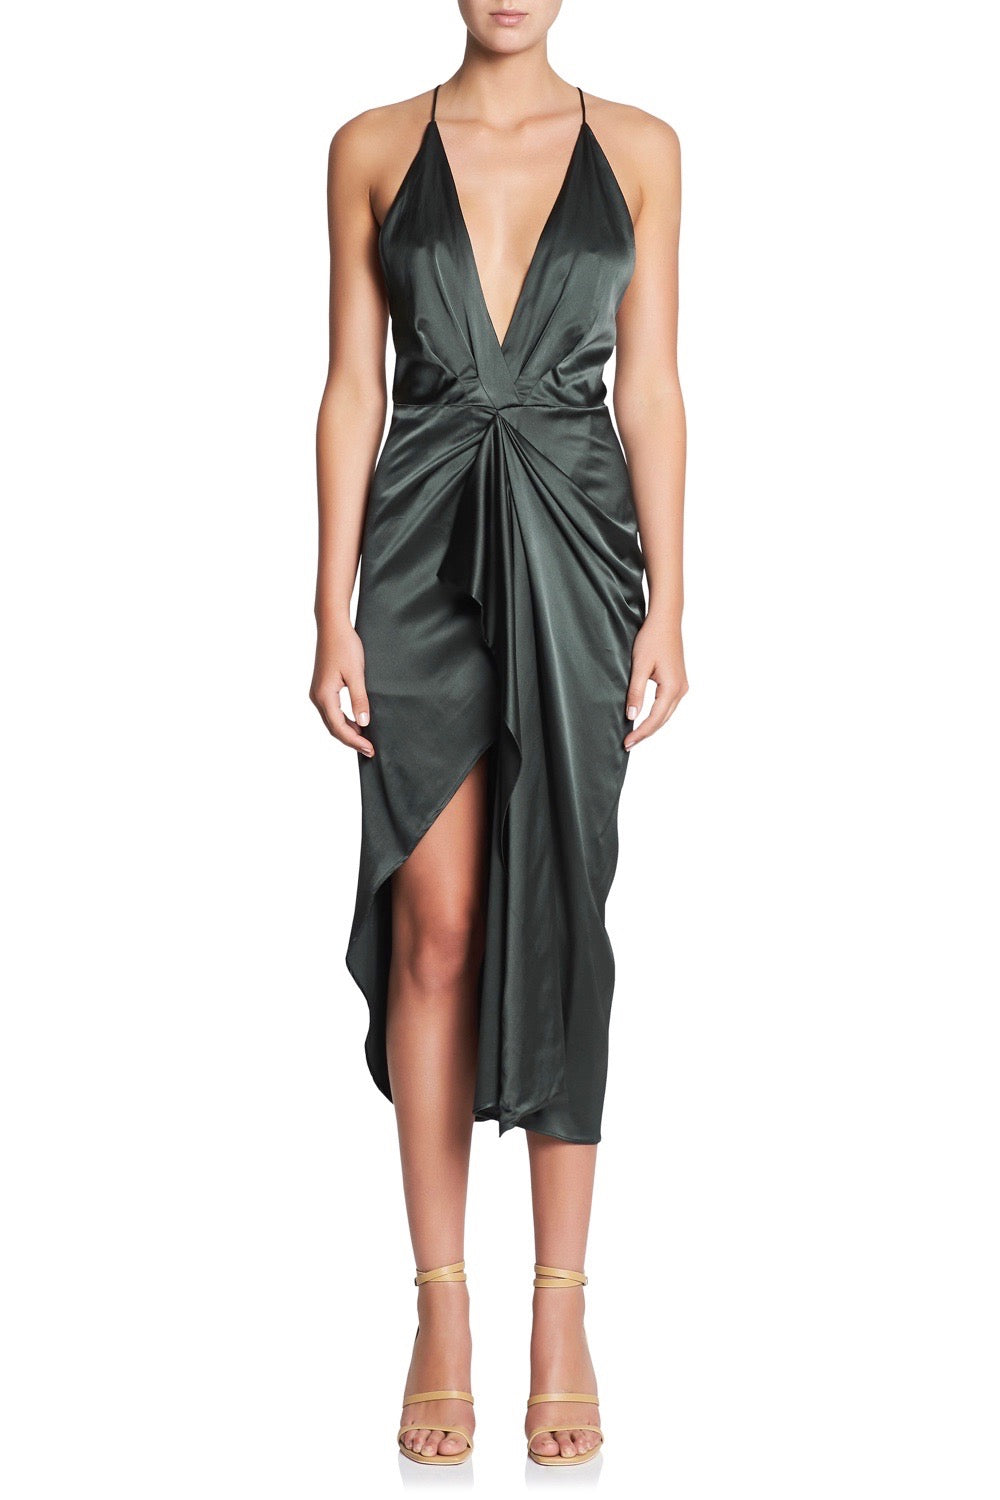 GREEN LIGHT SLIP DRESS